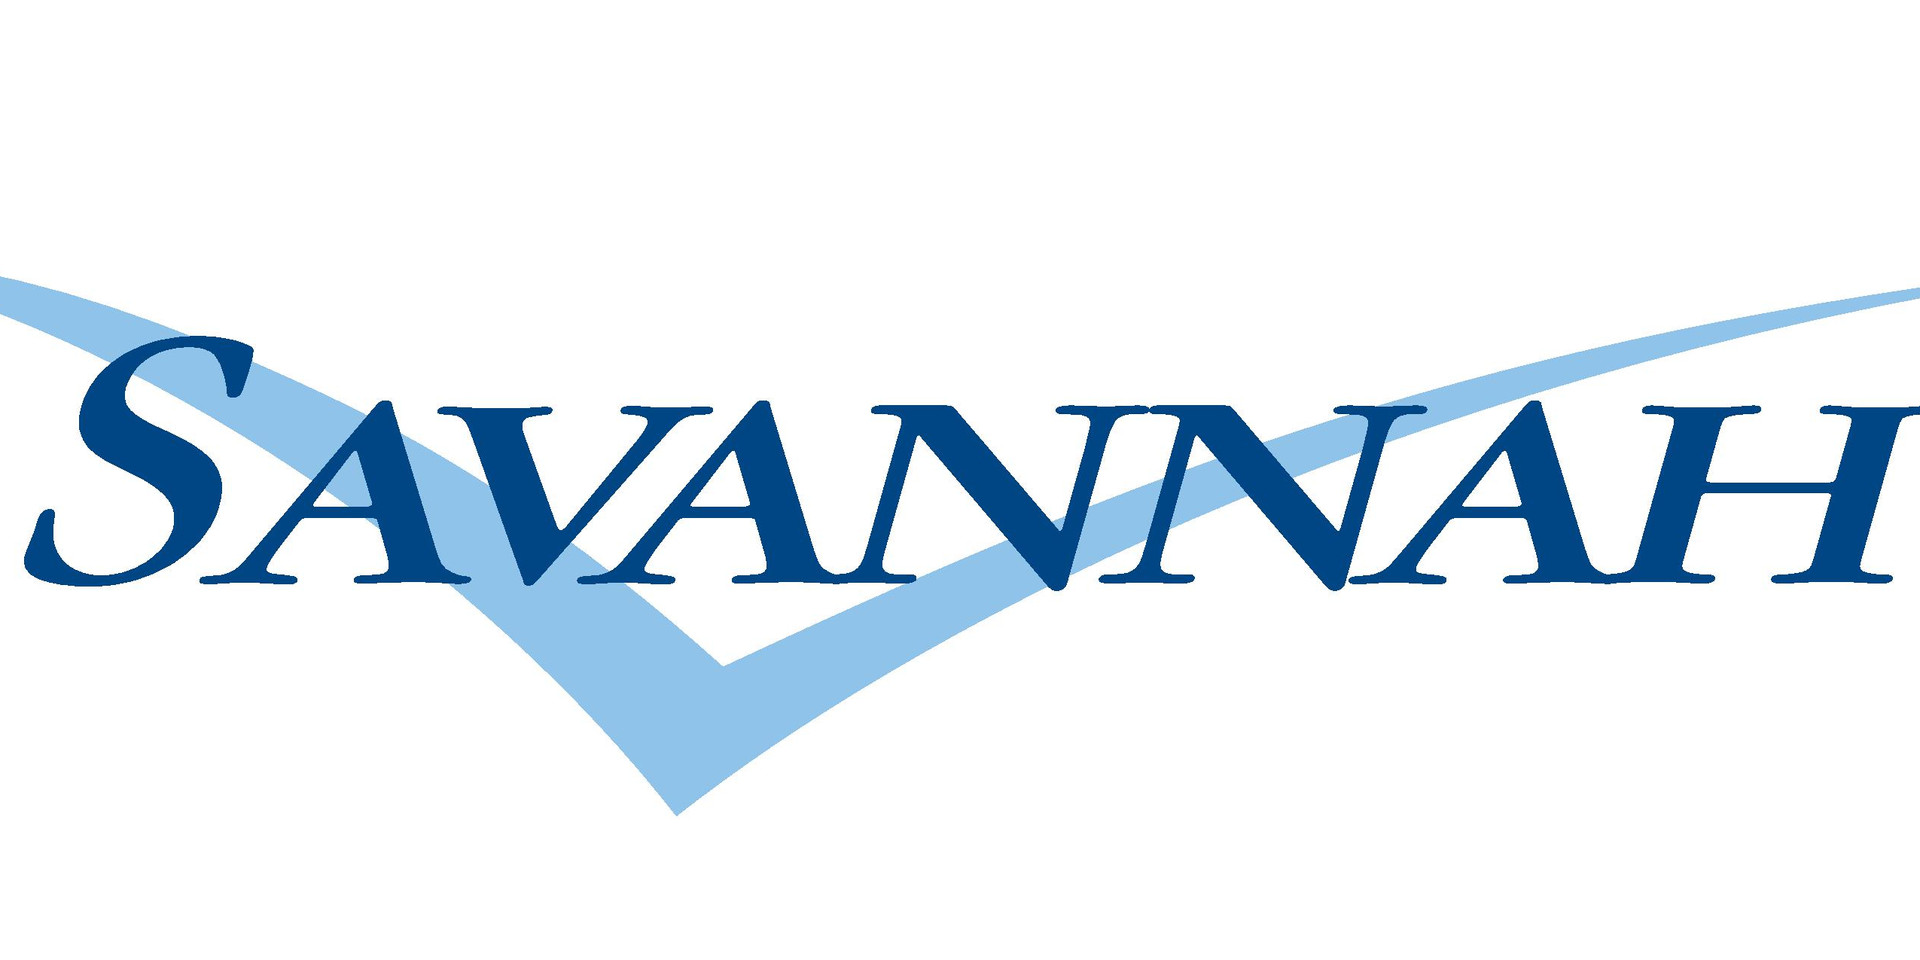 savannah logo jpeg.jpg